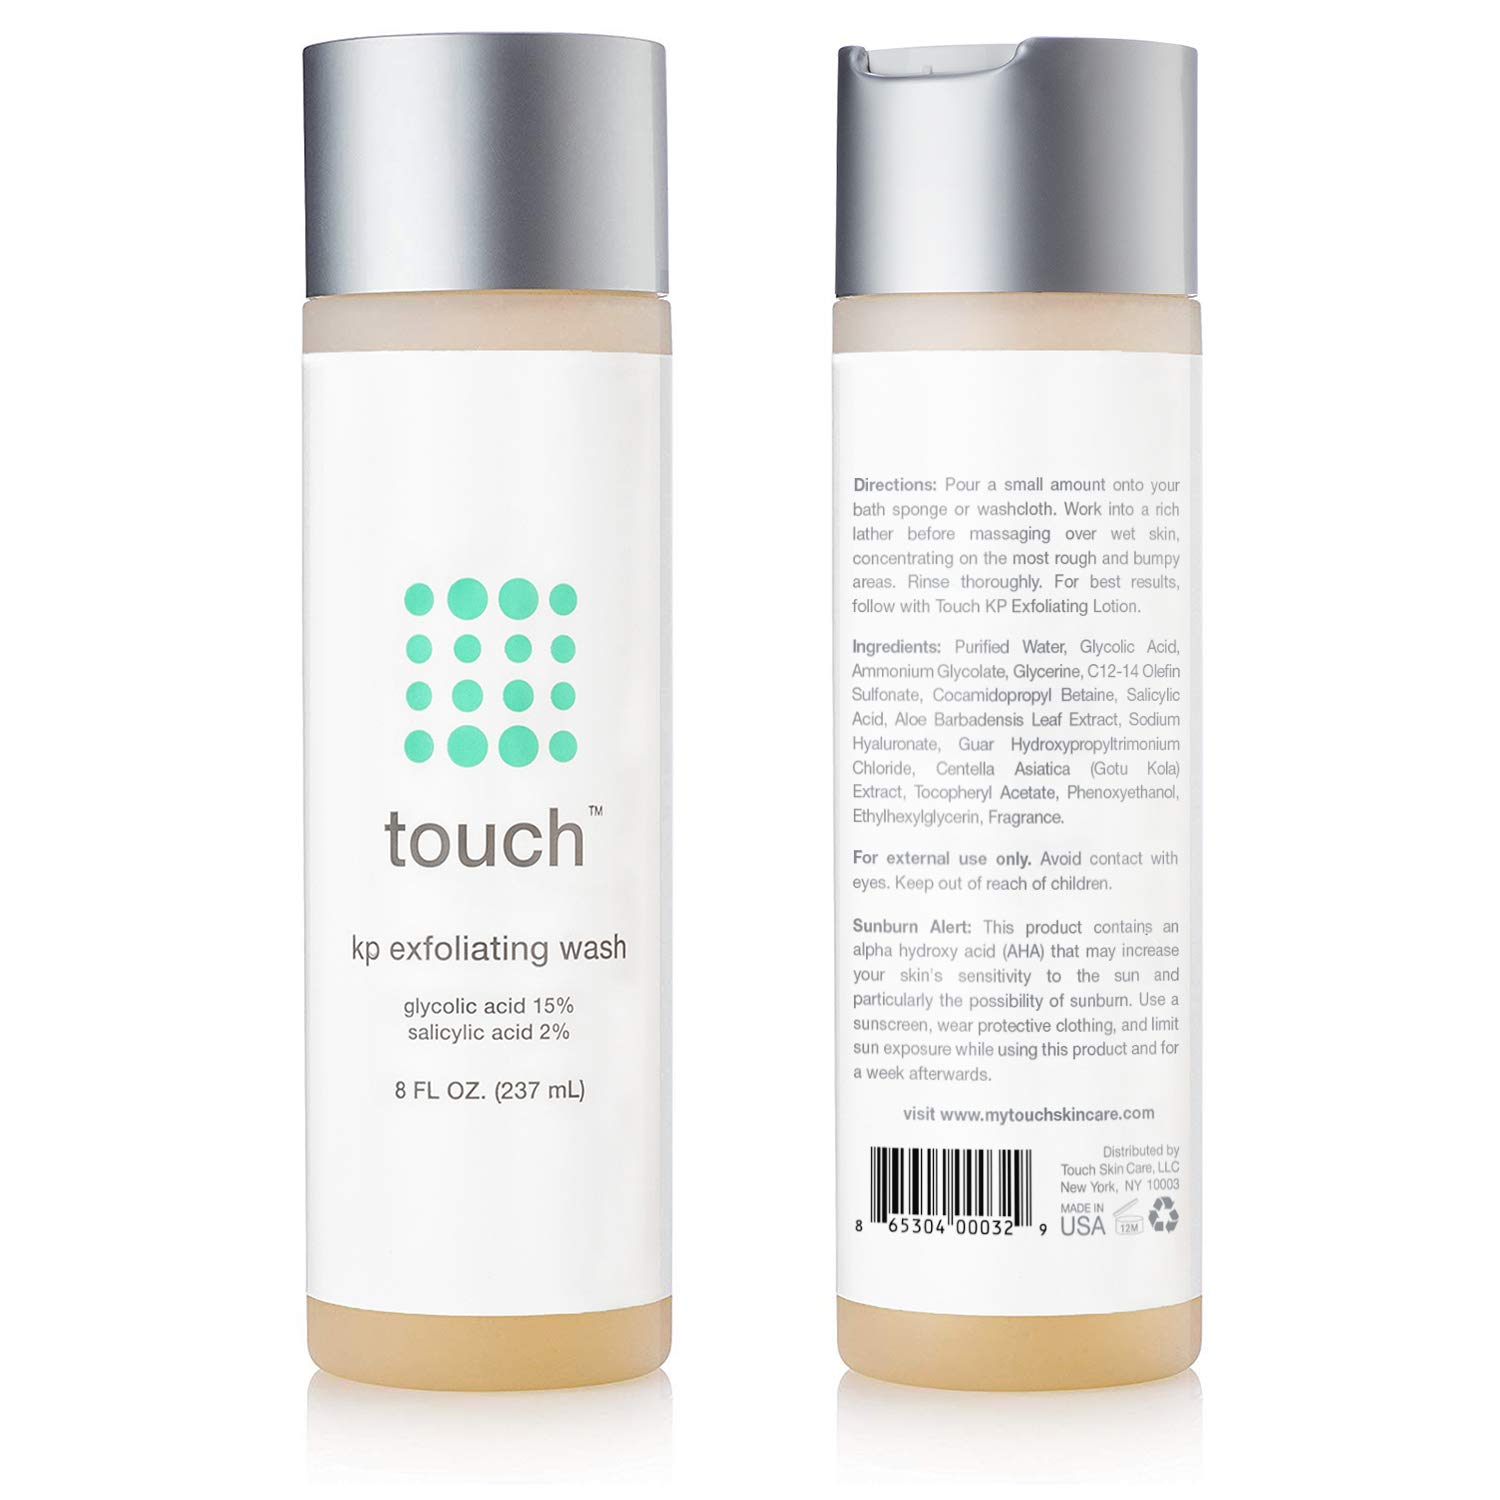 Touch Keratosis Pilaris & Acne Exfoliating Body Wash Cleanser - KP Treatment with 15% Glycolic Acid, 2% Salicylic Acid, Hyaluronic Acid - Smooths Rough & Bumpy Skin - Gets Rid Of Redness, 8 Ounce by TOUCH (Image #8)